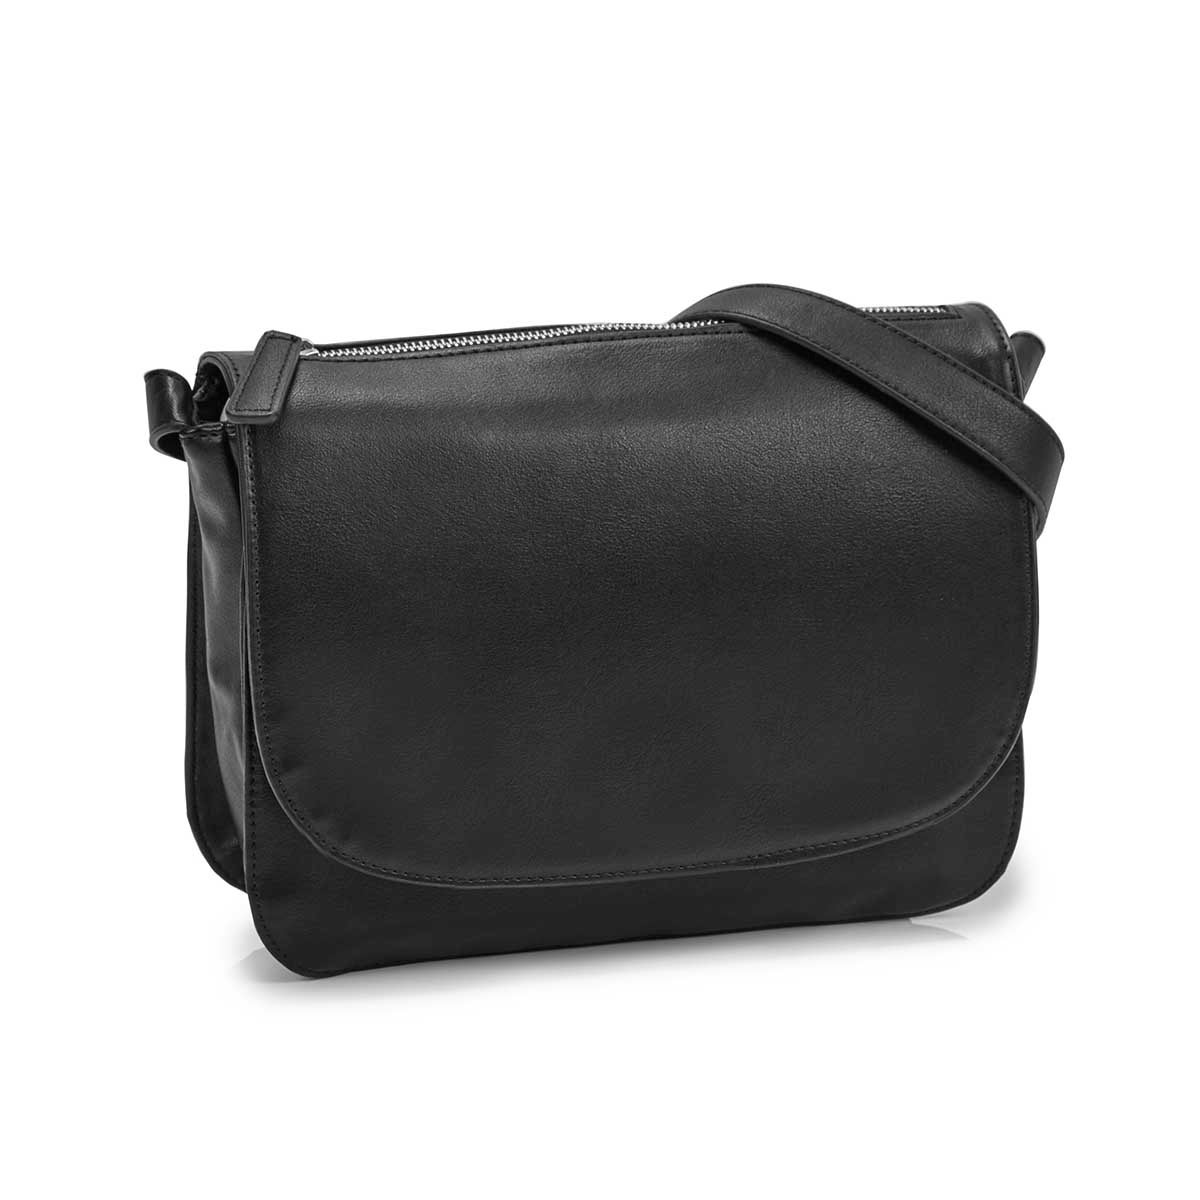 Women's MATTIE black crossbody saddle bag